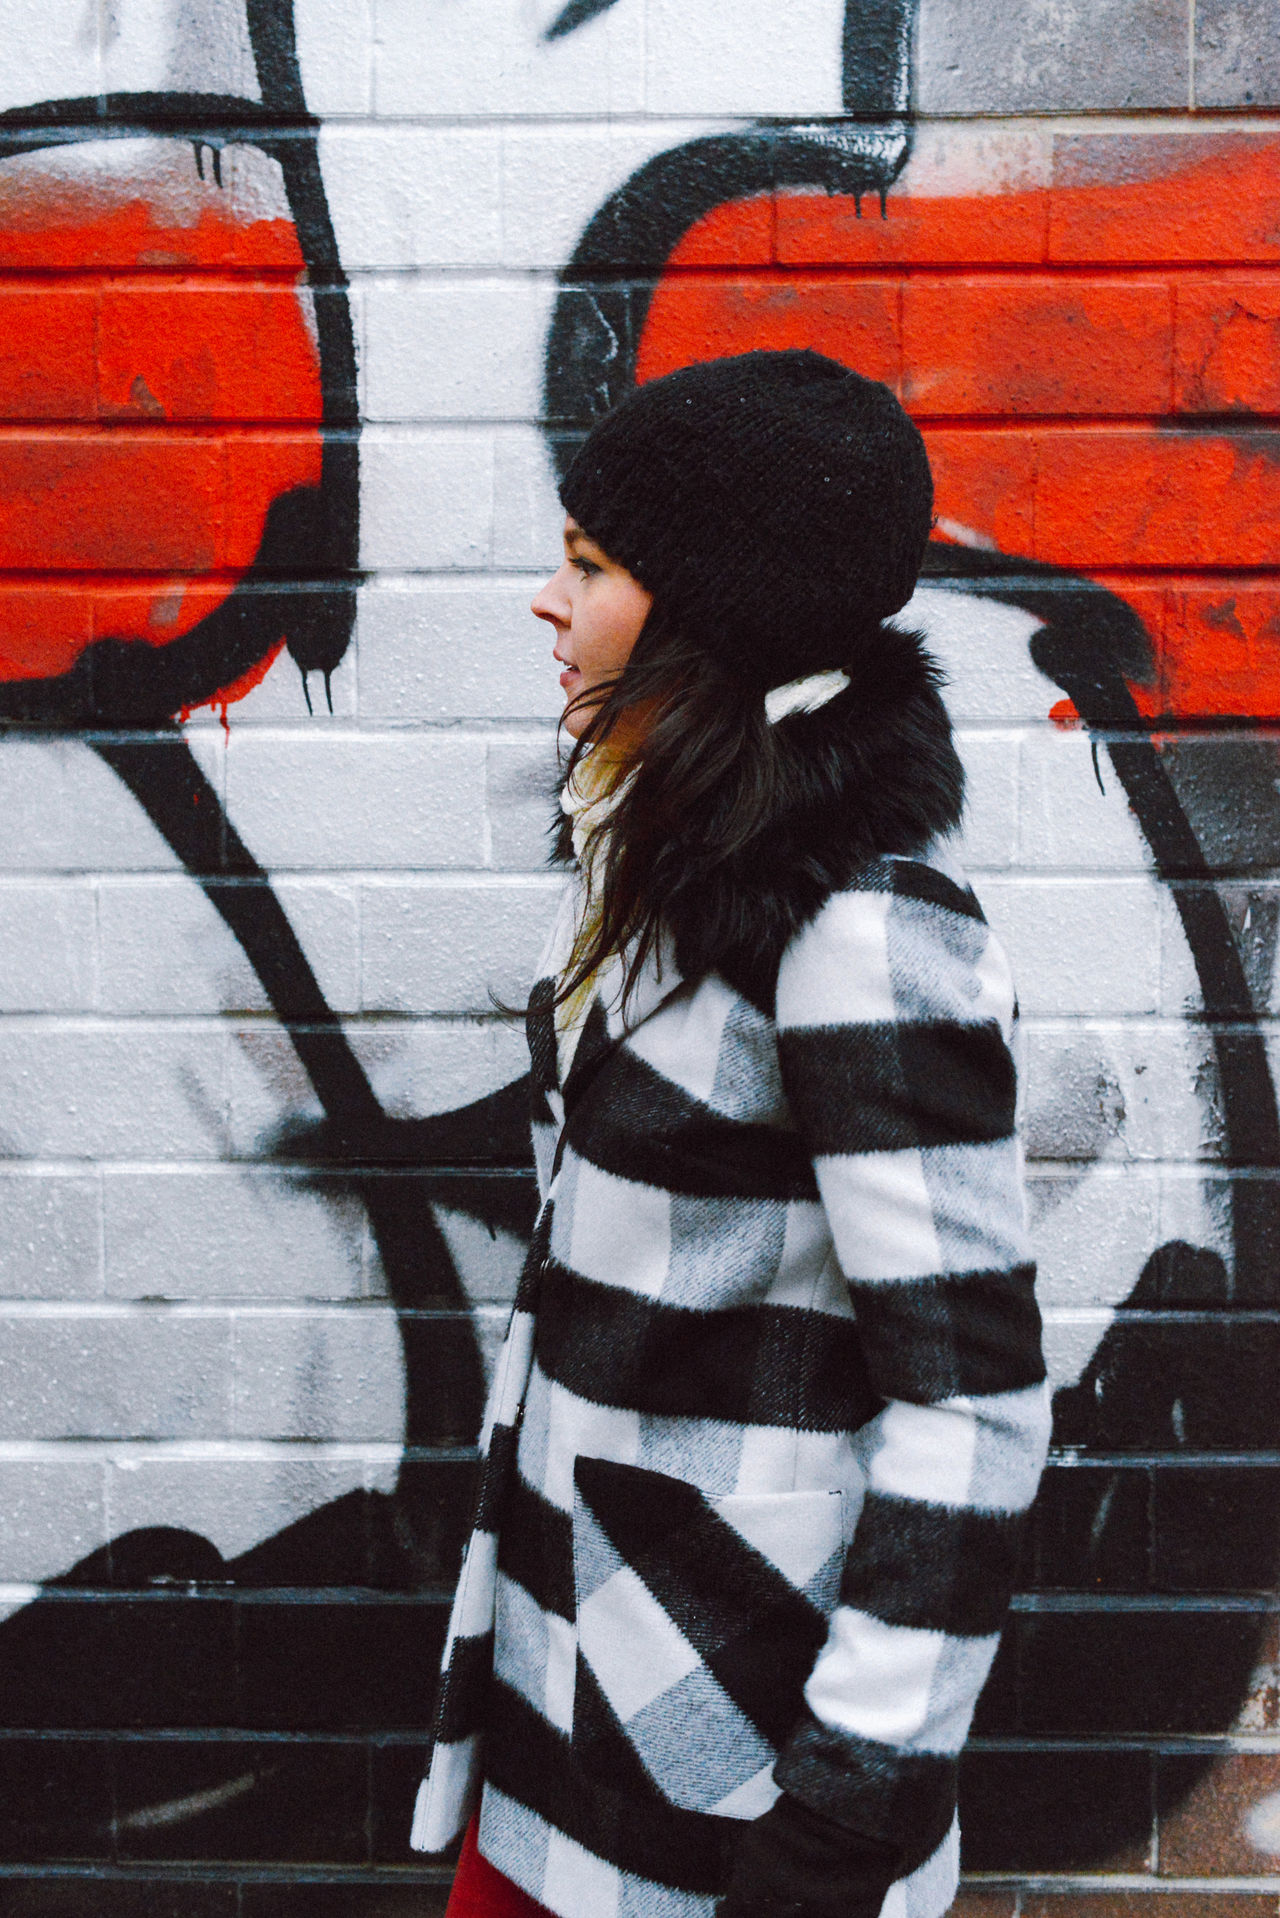 Adapted To The City Brick Wall Cold Cold Temperature Day Fashion Graffiti Lifestyle Lifestyles One Person One Woman Only One Young Woman Only Outdoors Real People Street Winter